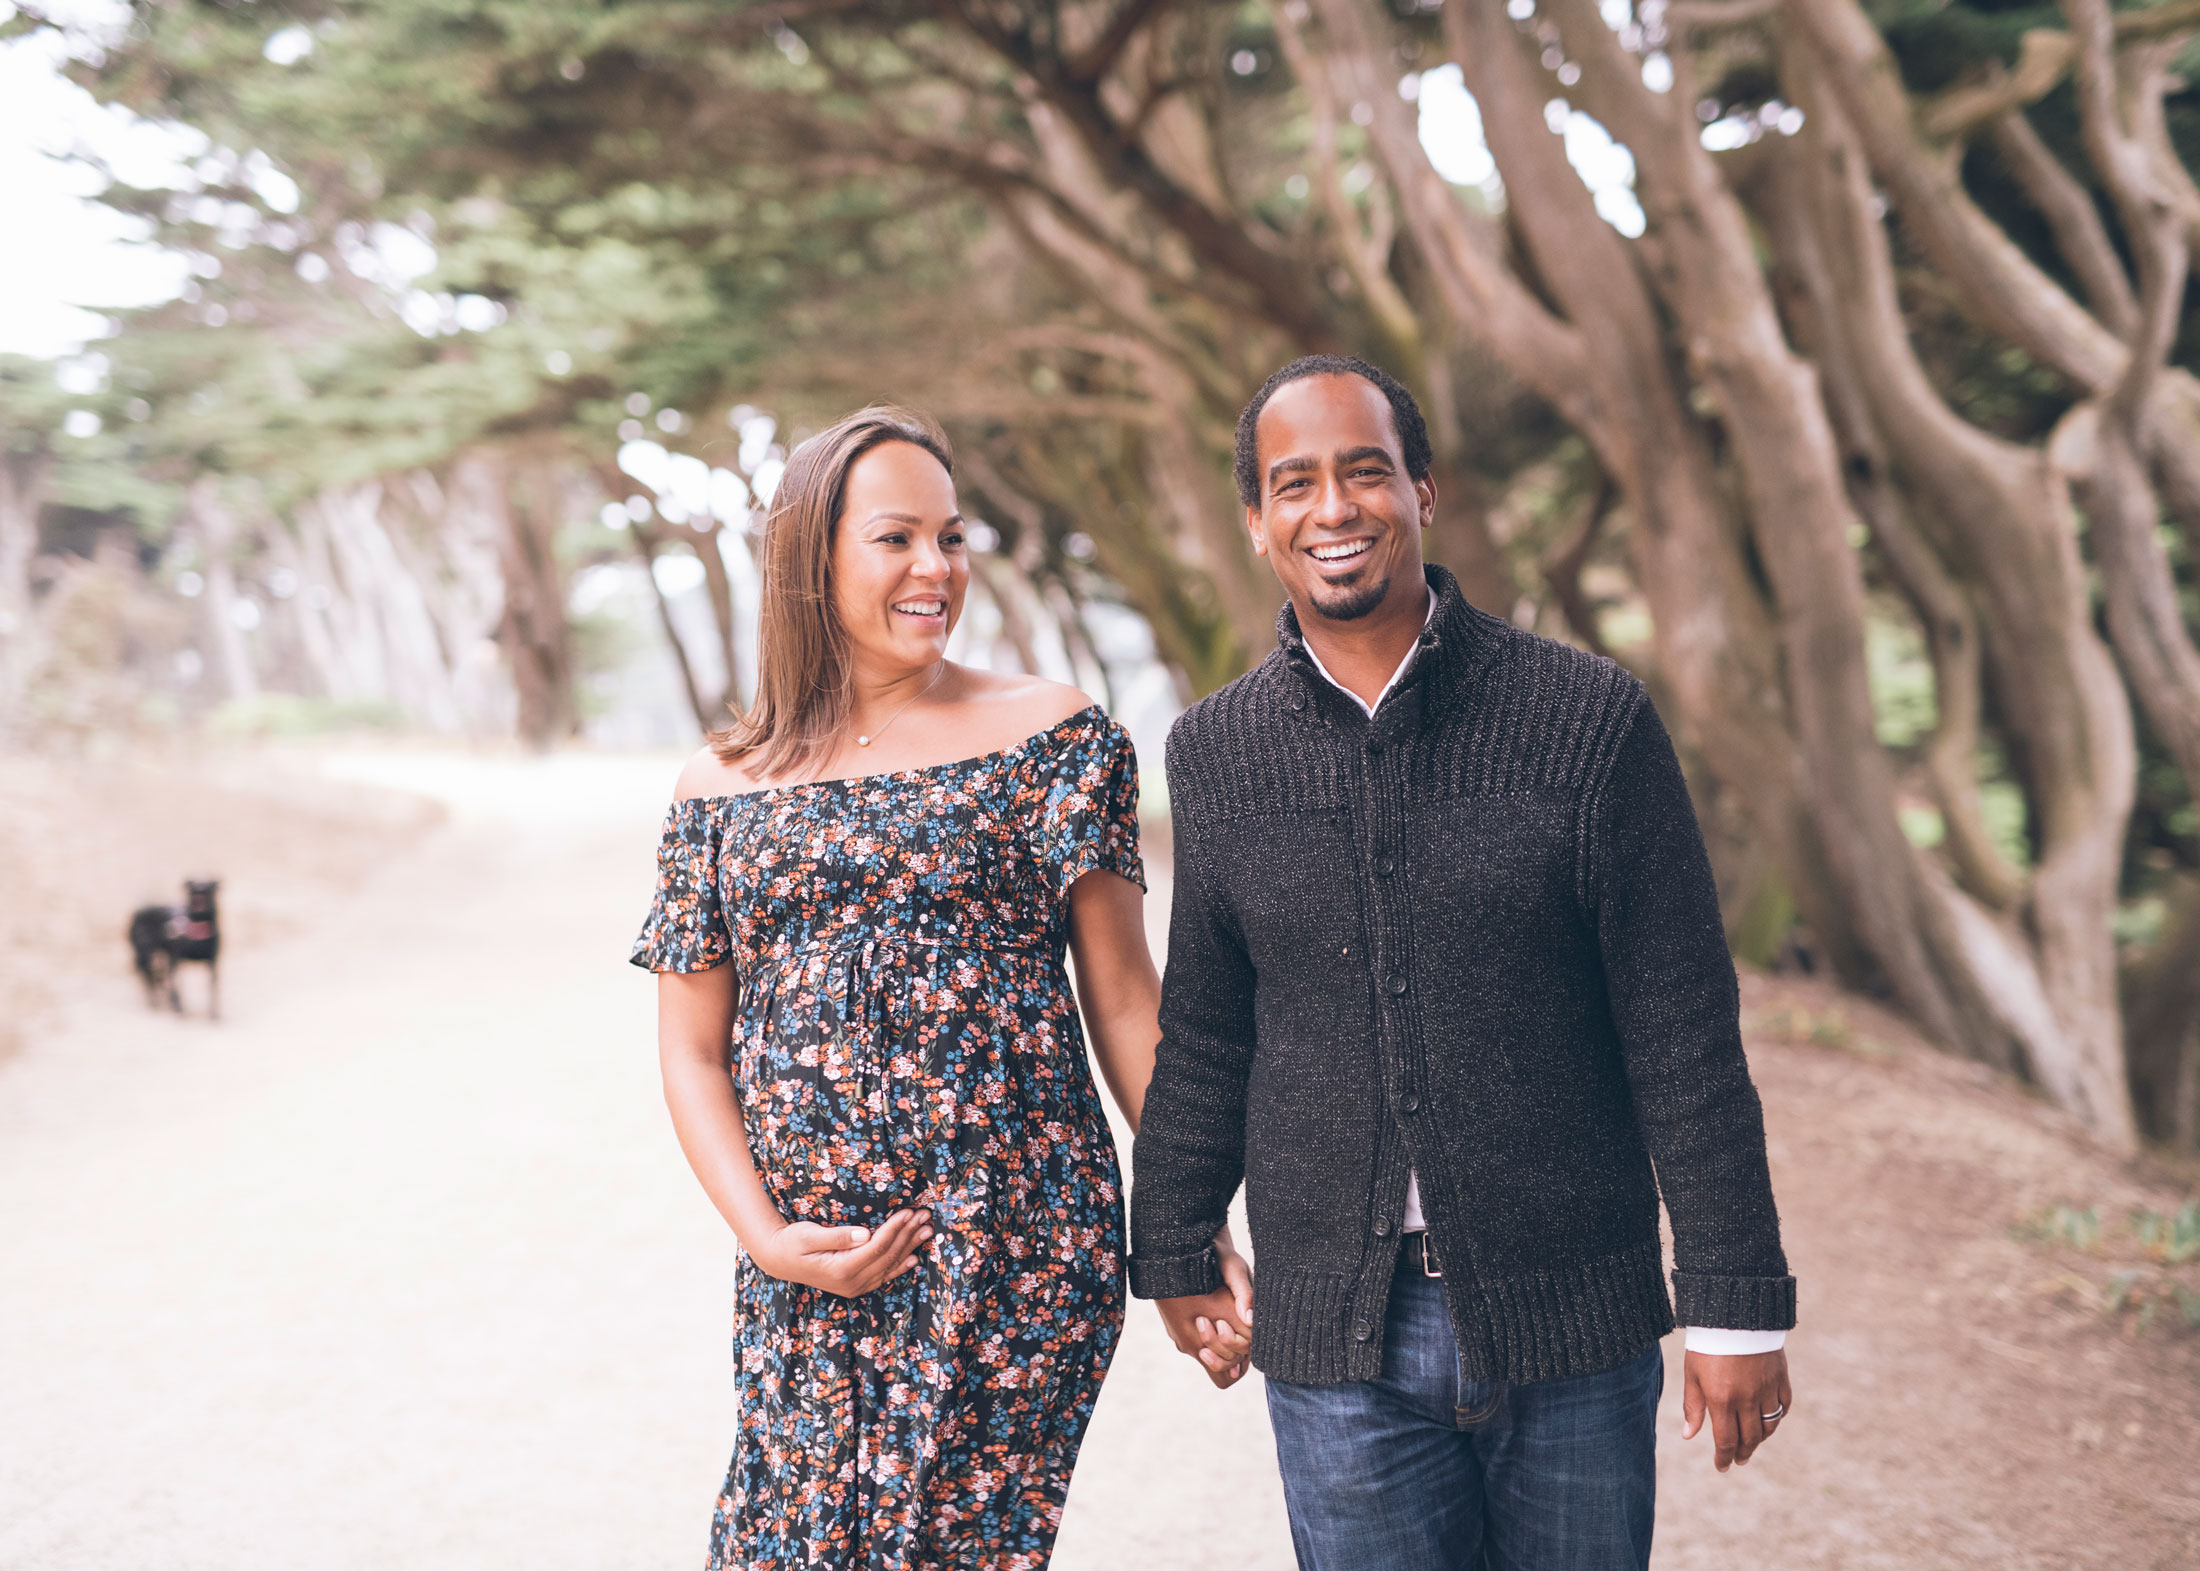 san francisco lands end maternity session.jpg